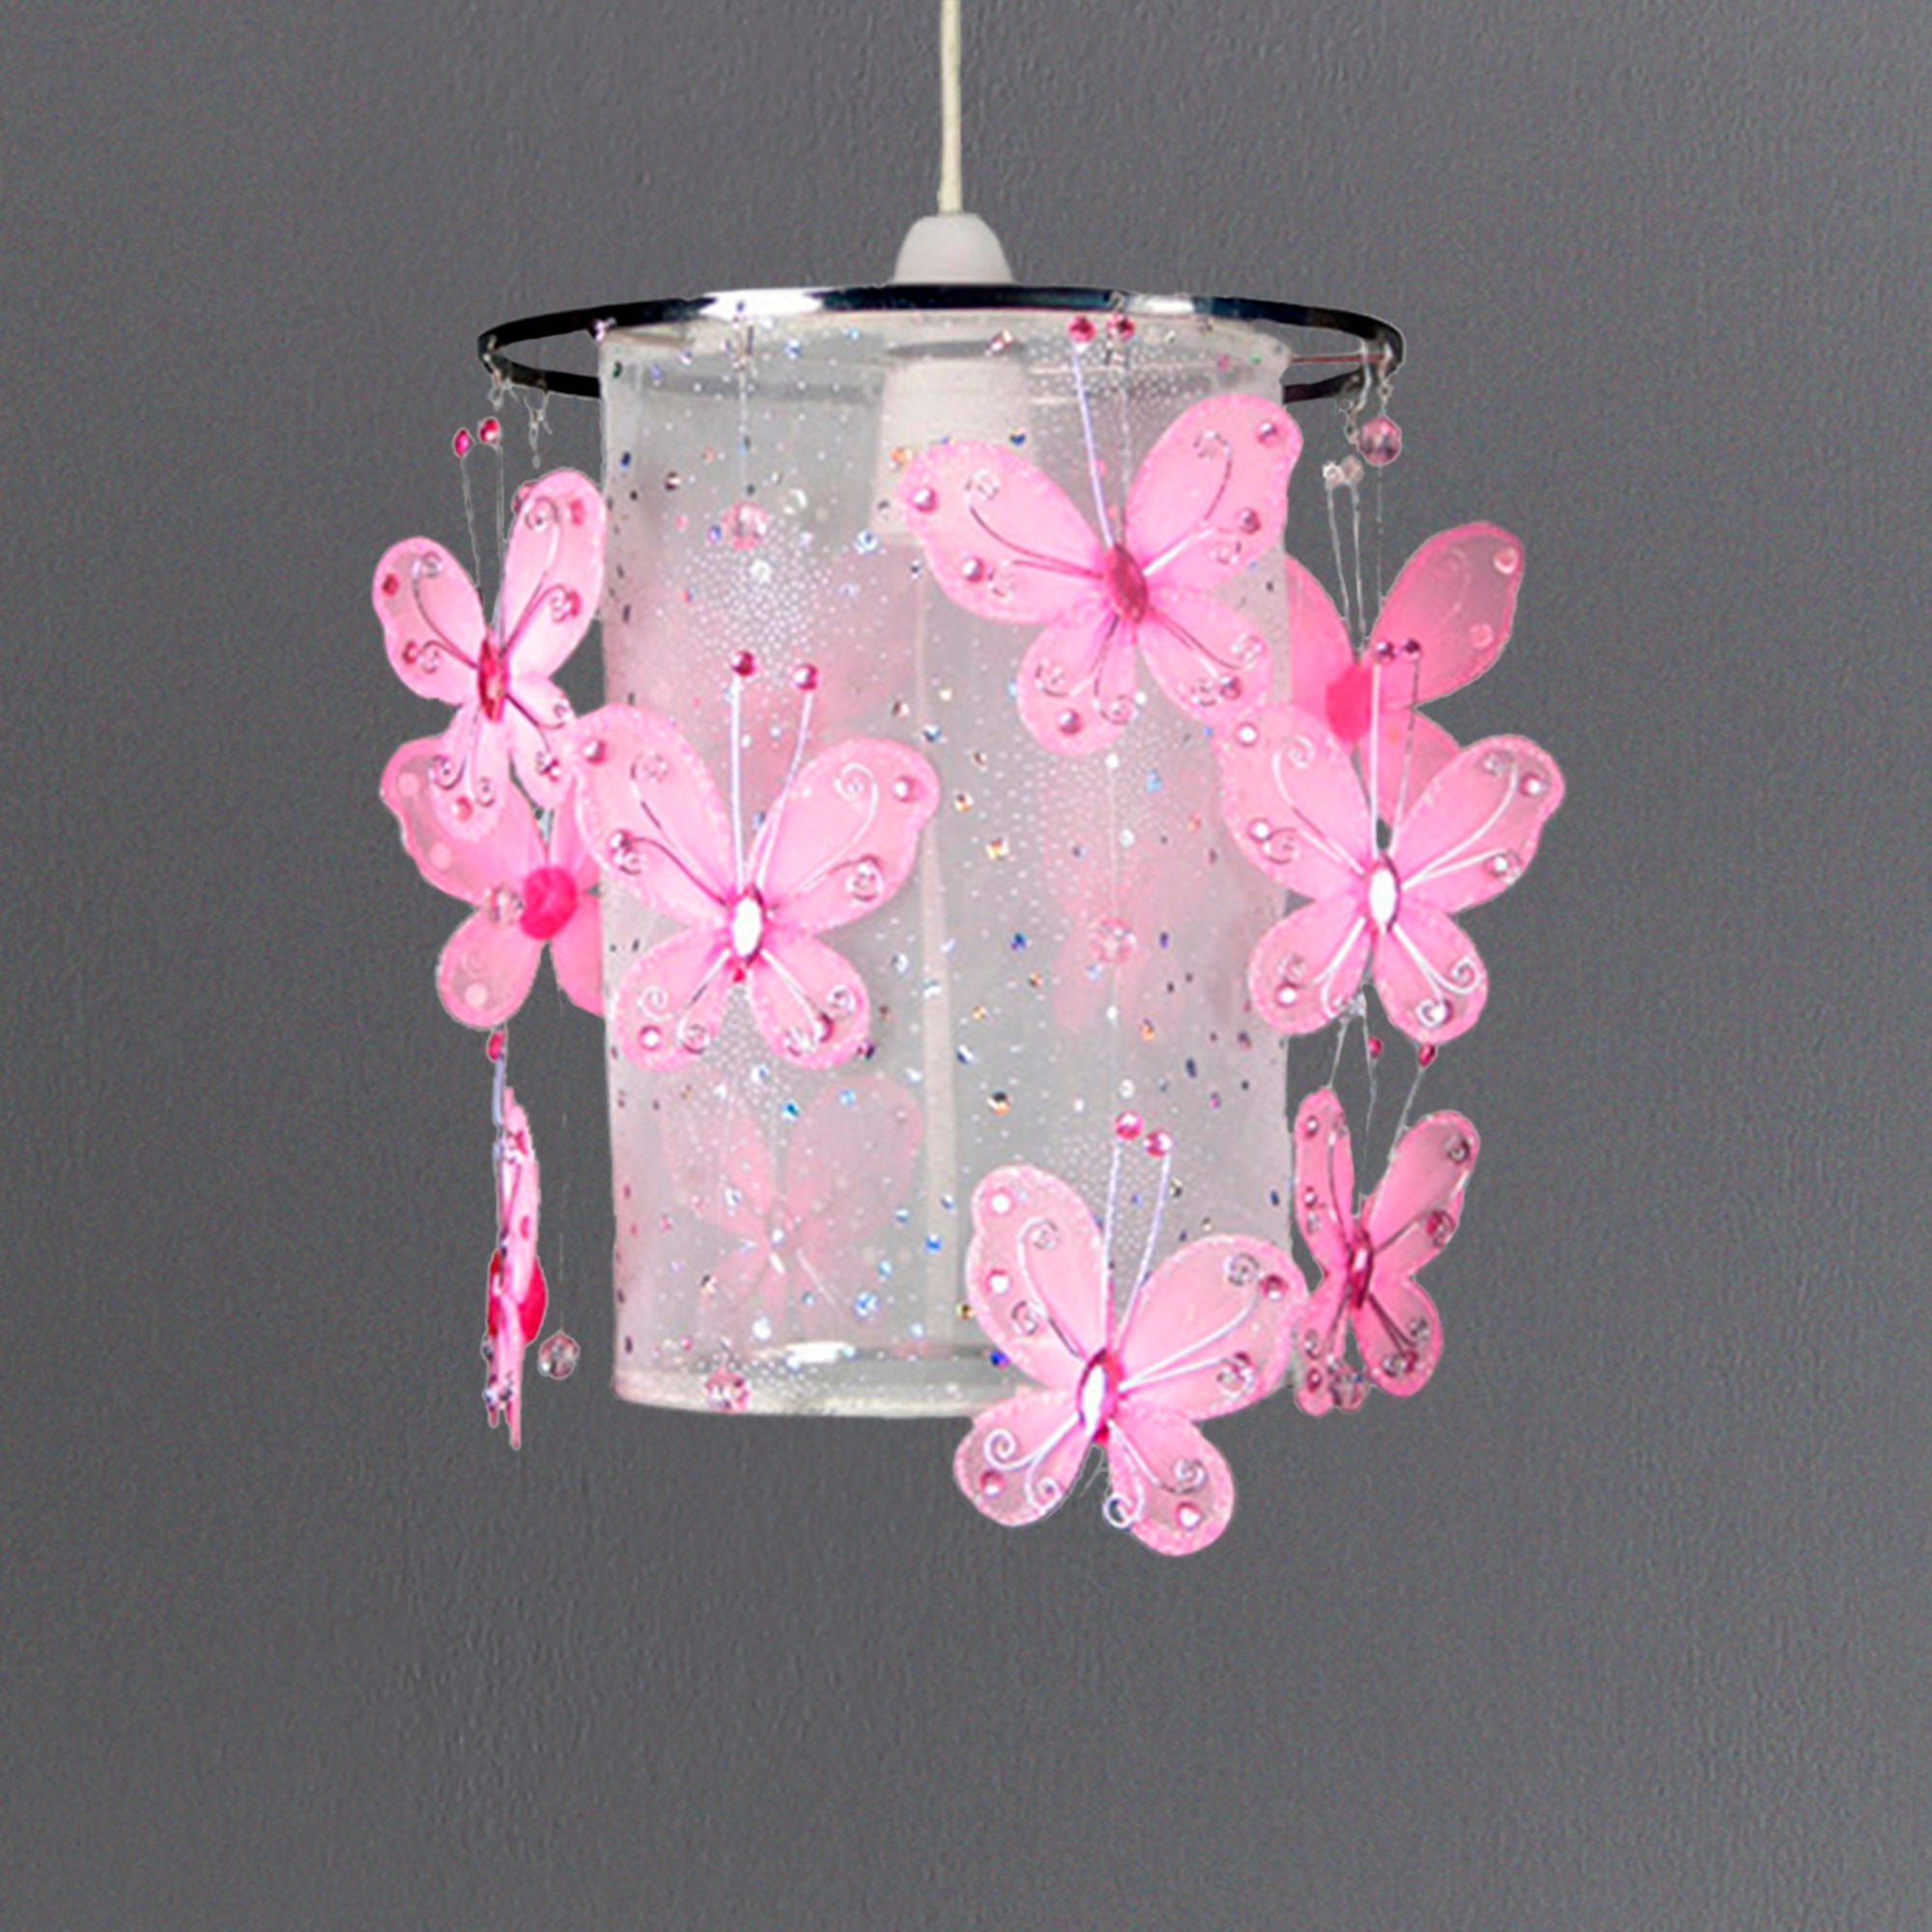 Butterfly Collection Ceiling Pendant Shade